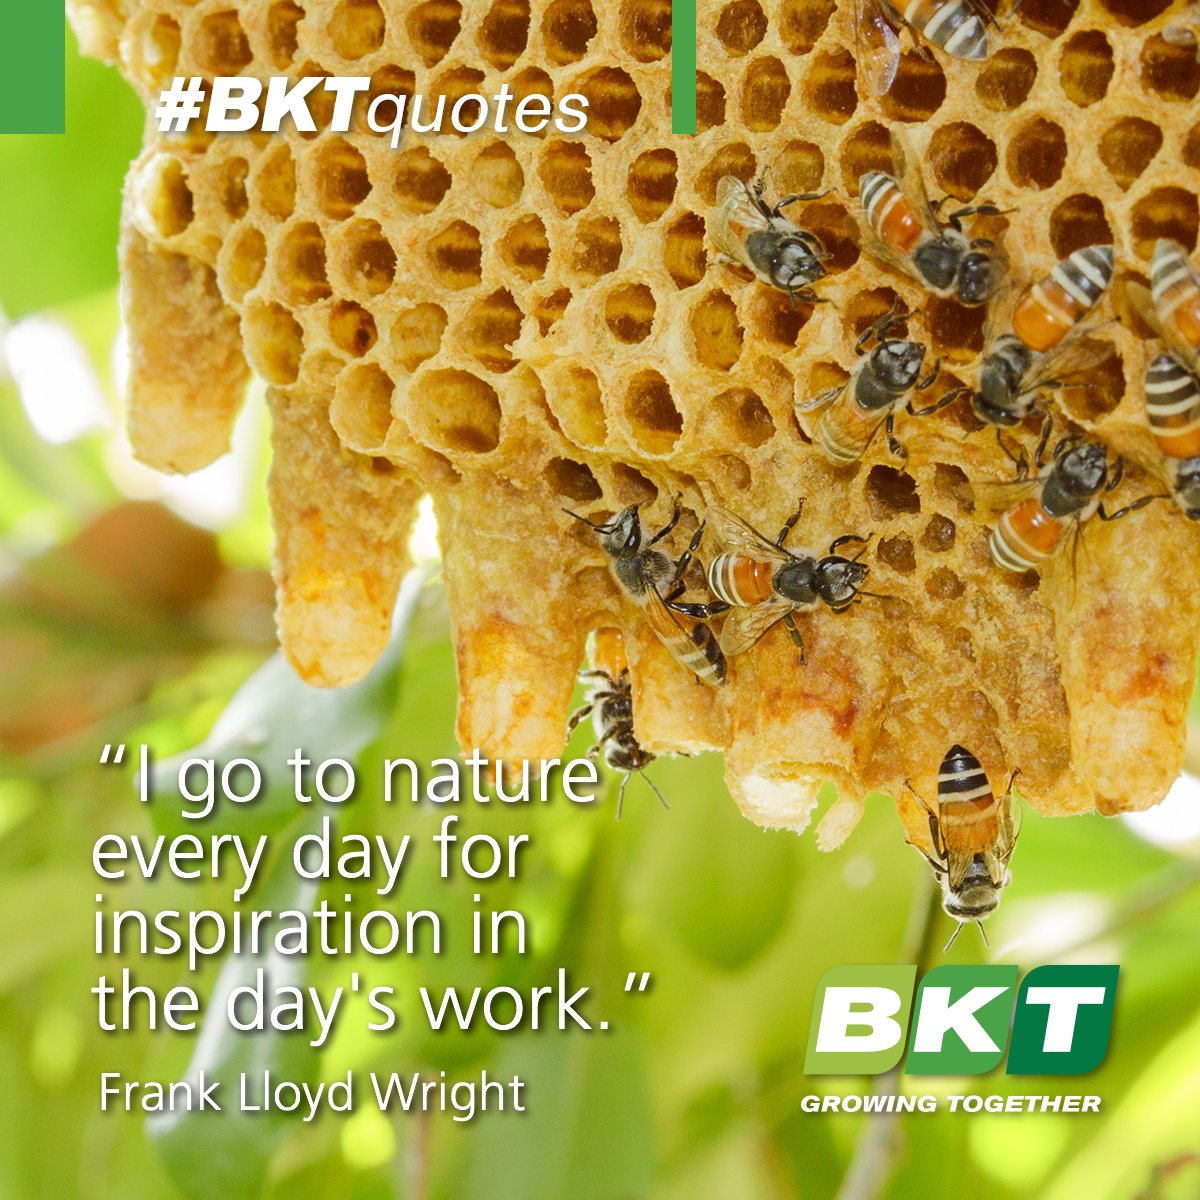 Let Nature be your inspiration! #BKTquotes #nature #quote https://t.co/MO5UKN6yqx